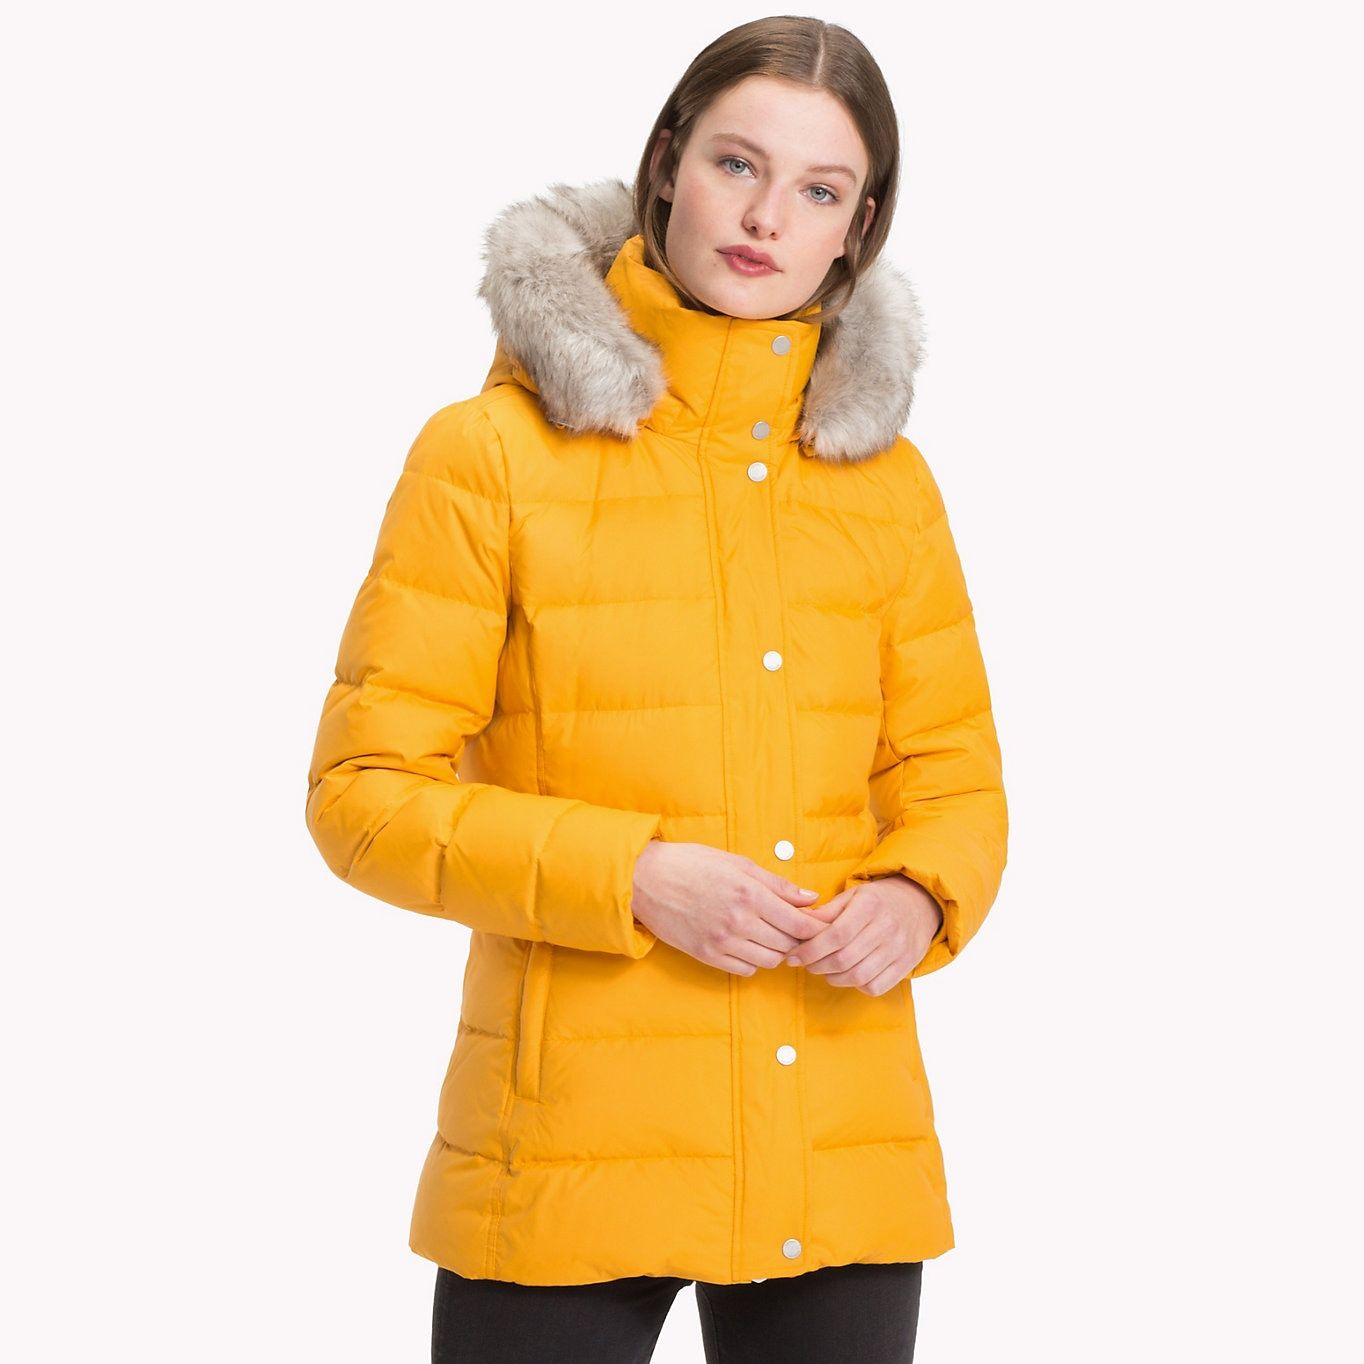 Tommy Hilfiger Padded Down Jacket Sunflower Tommy Hilfiger Women Main Image Tommy Hilfiger Women Tommy Hilfiger Down Jacket [ 1364 x 1364 Pixel ]